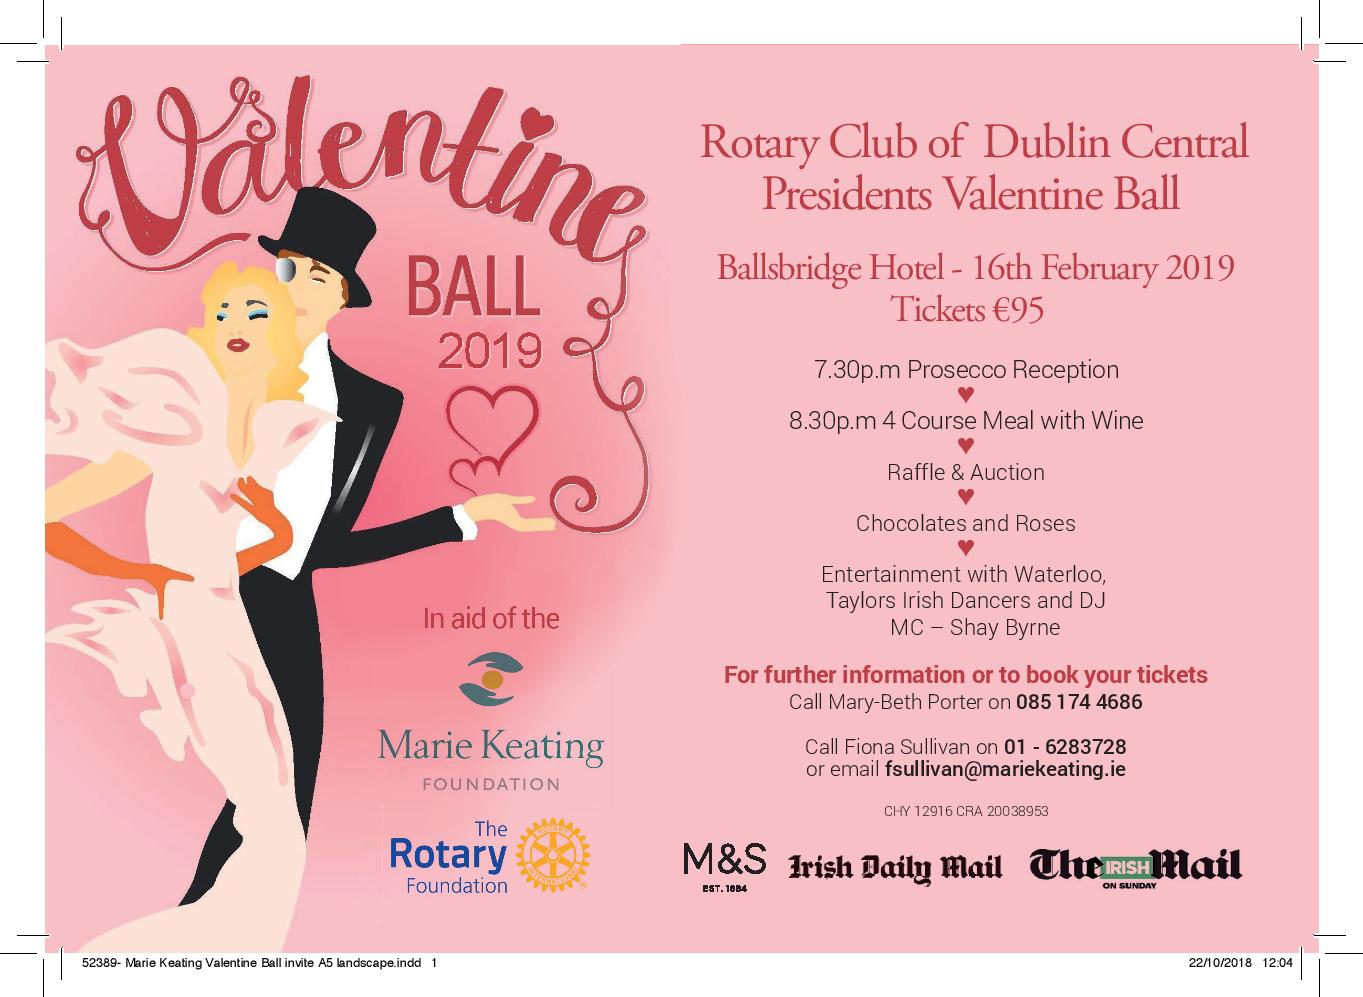 Rotary Club of Dublin Central Valentine Ball 2019